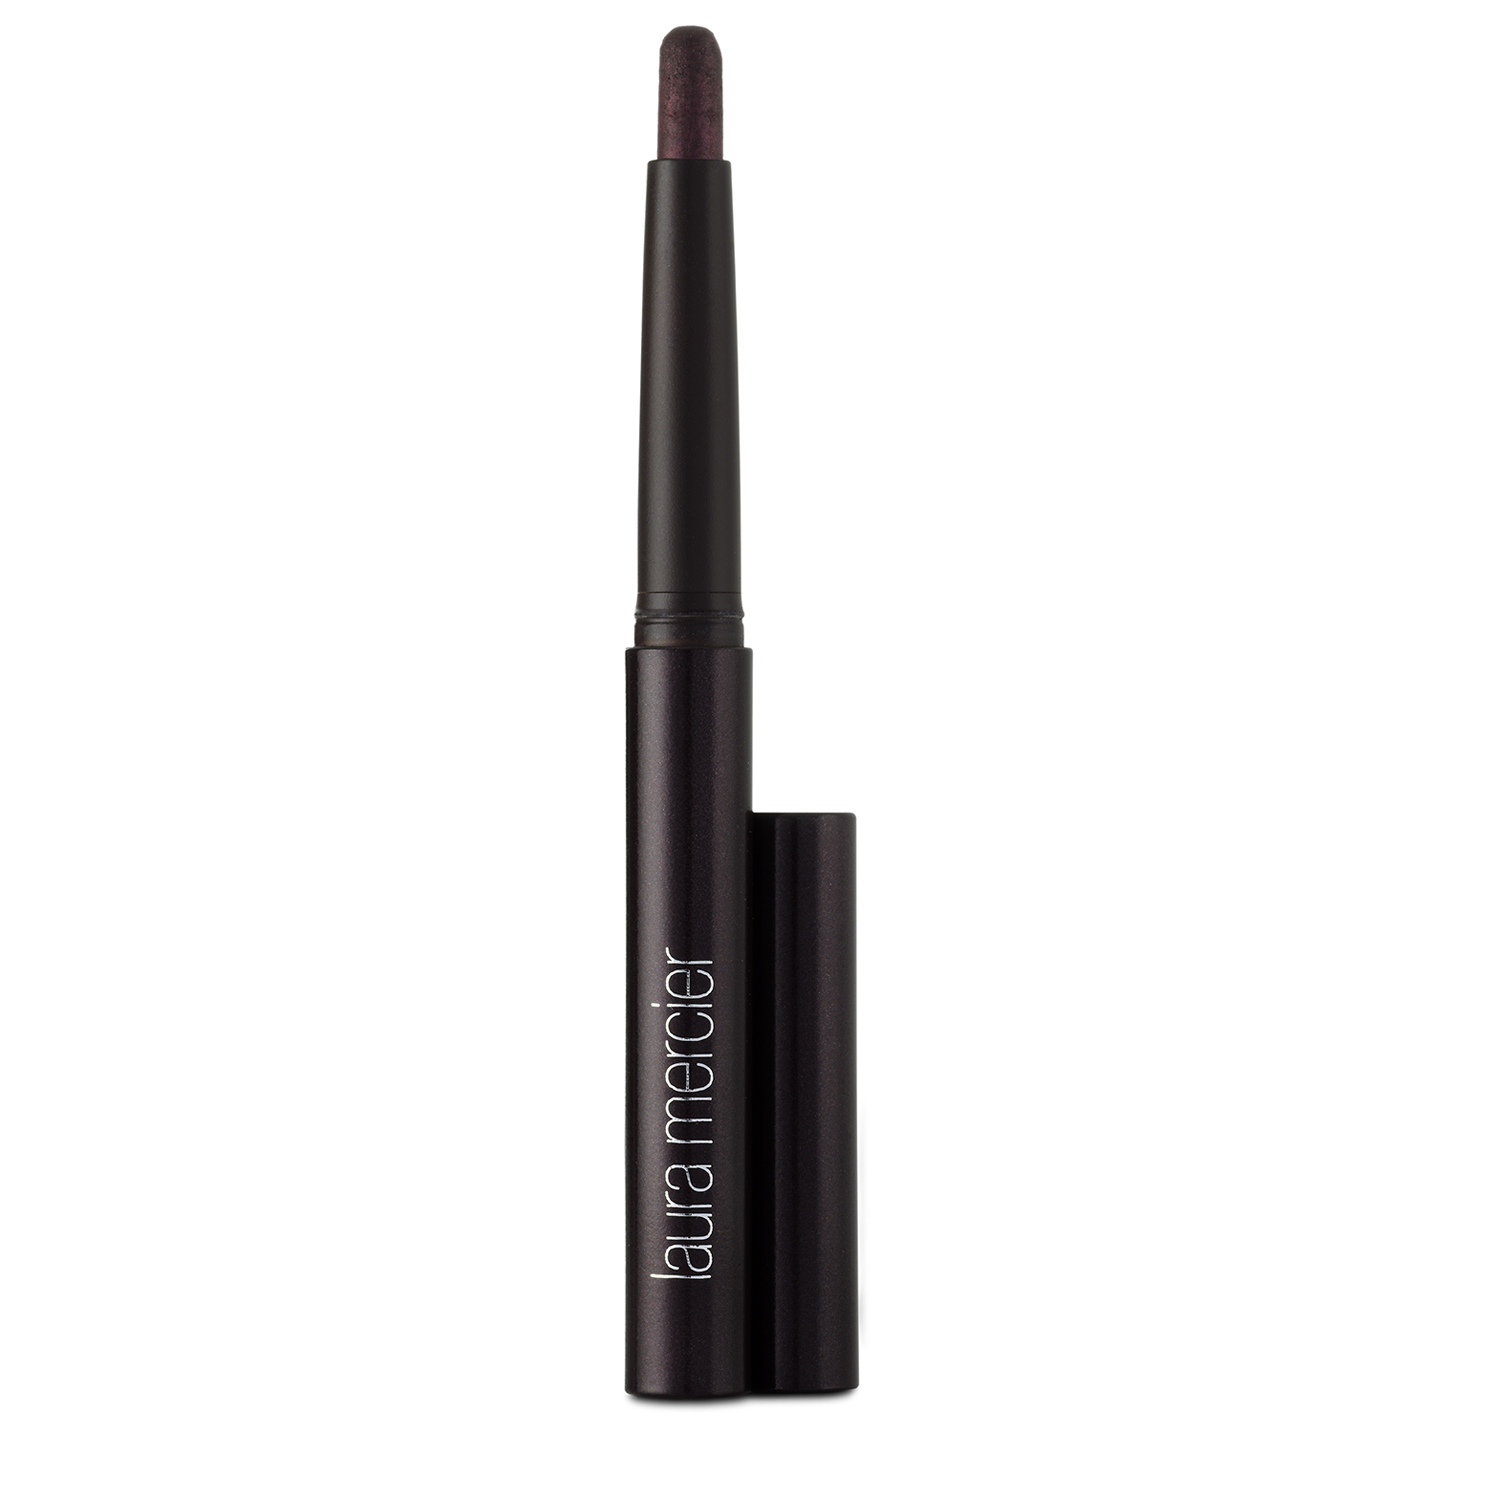 Laura Mercier stick eye colour in Plum, £20.50